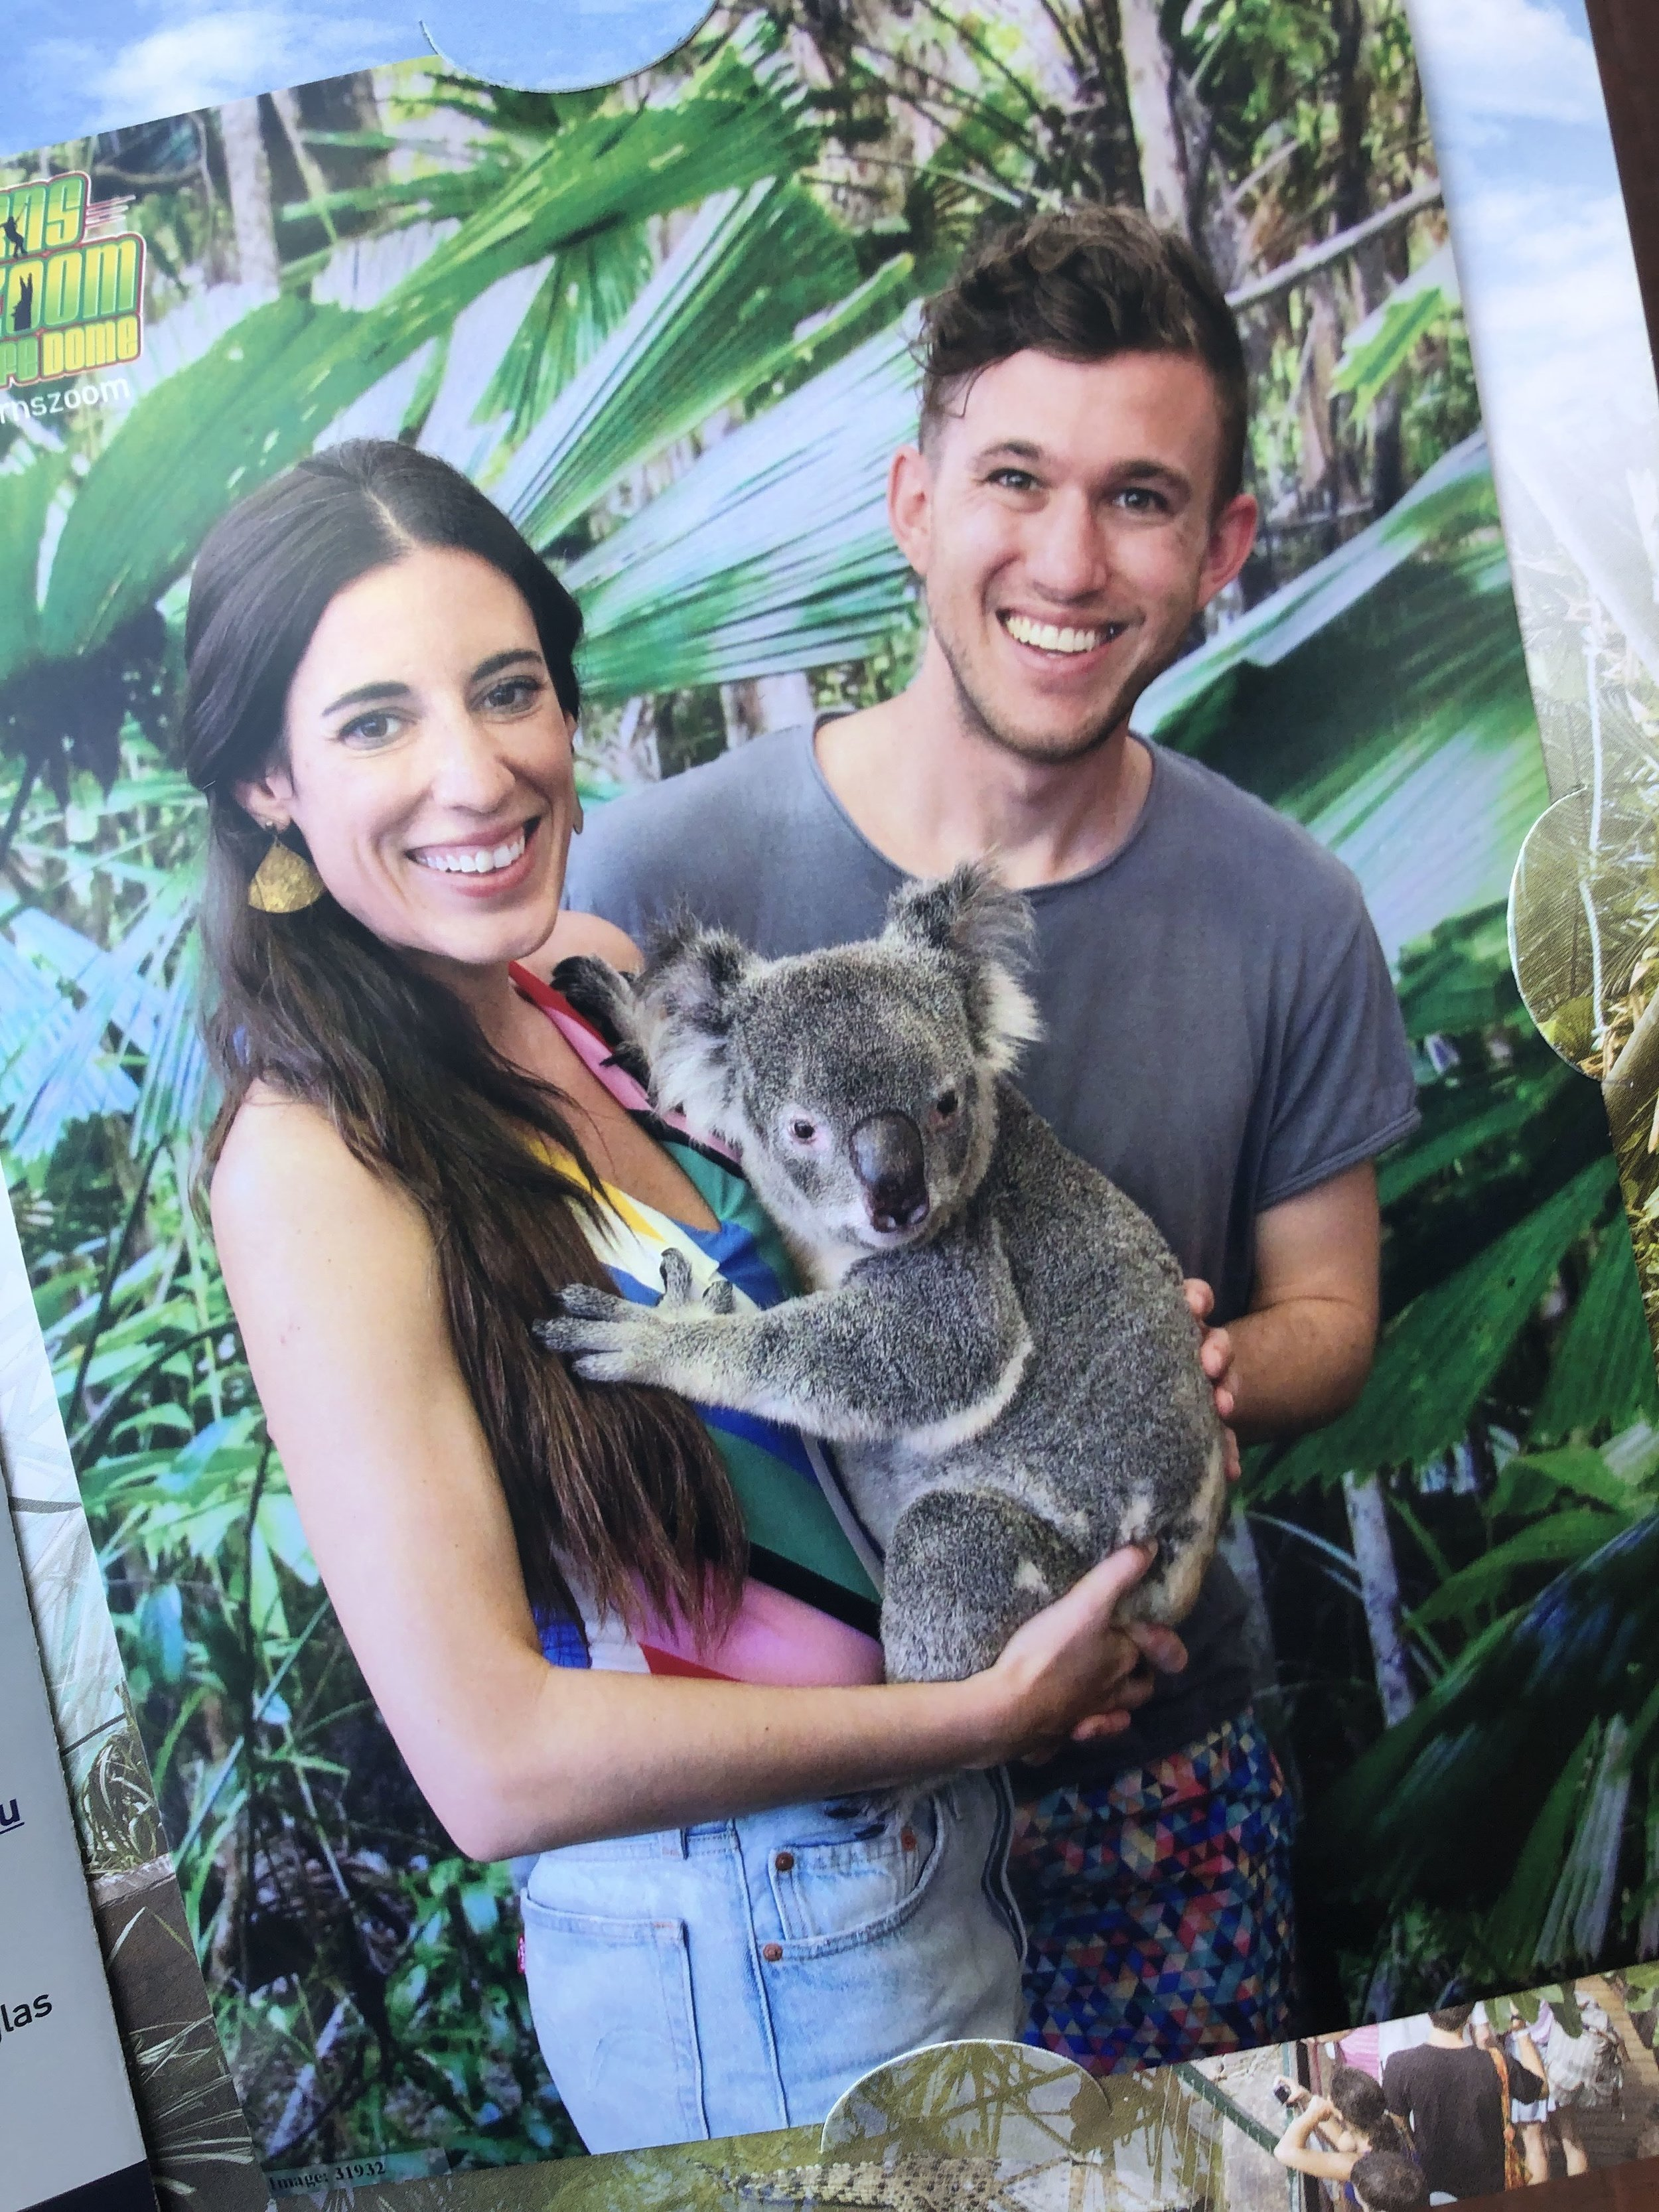 Holding a koala is seriously one of my favorite memories from Australia.